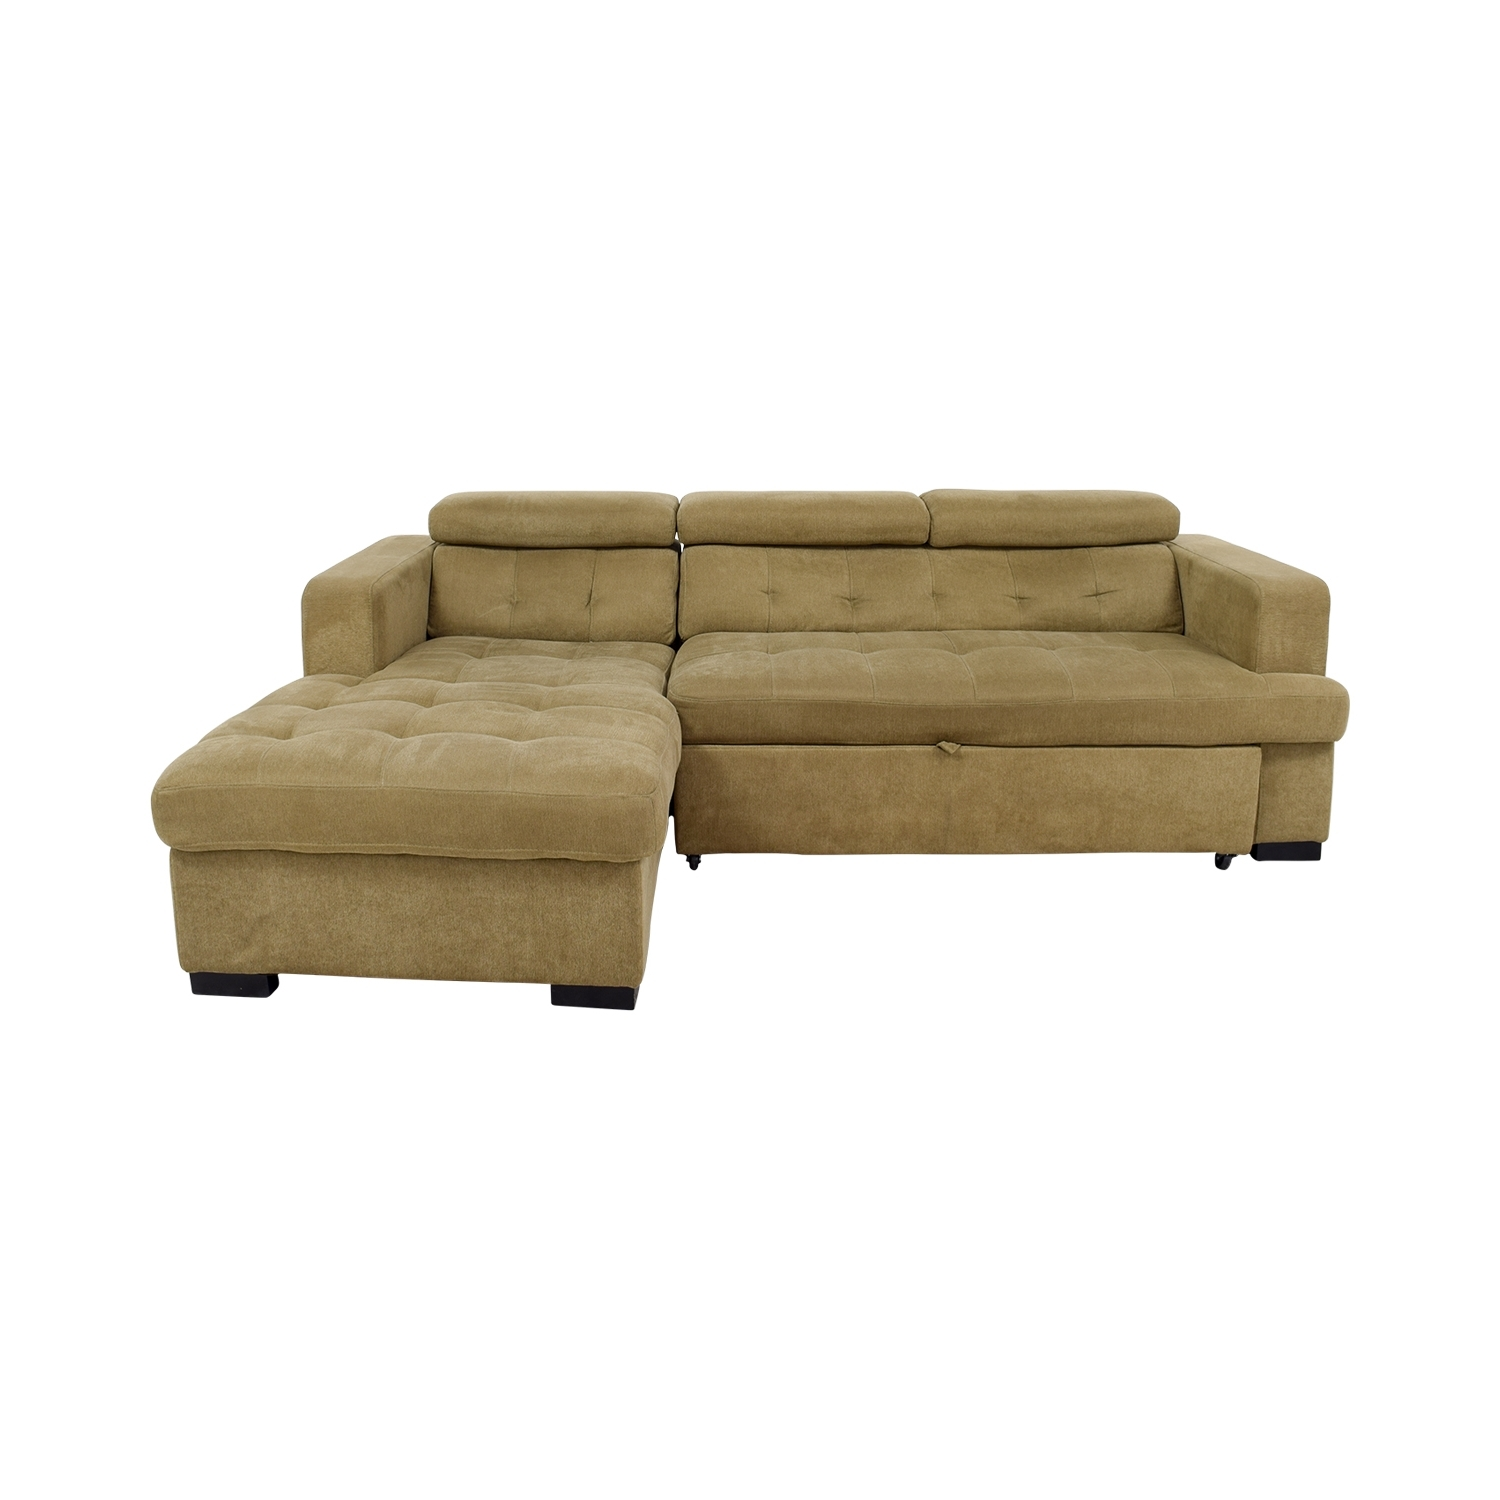 [%59% Off – Bob's Furniture Bob's Furniture Gold Chaise Sectional Within Newest Chaise Sectional Sleepers|Chaise Sectional Sleepers Within Preferred 59% Off – Bob's Furniture Bob's Furniture Gold Chaise Sectional|Trendy Chaise Sectional Sleepers Regarding 59% Off – Bob's Furniture Bob's Furniture Gold Chaise Sectional|Newest 59% Off – Bob's Furniture Bob's Furniture Gold Chaise Sectional Within Chaise Sectional Sleepers%] (View 1 of 15)